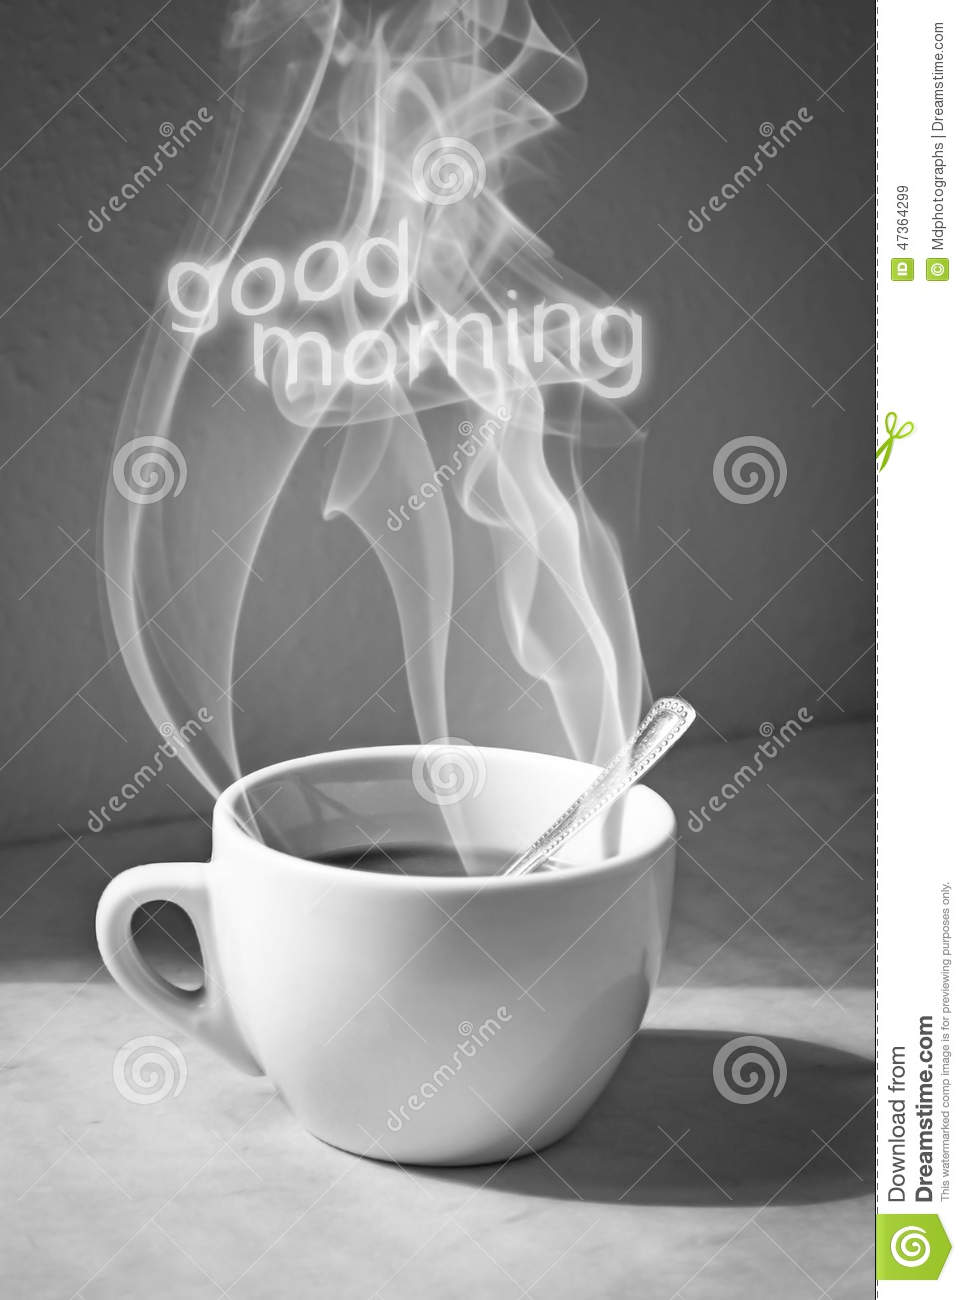 Cup Of Coffee With Steam And Good Morning Text Stock Photo